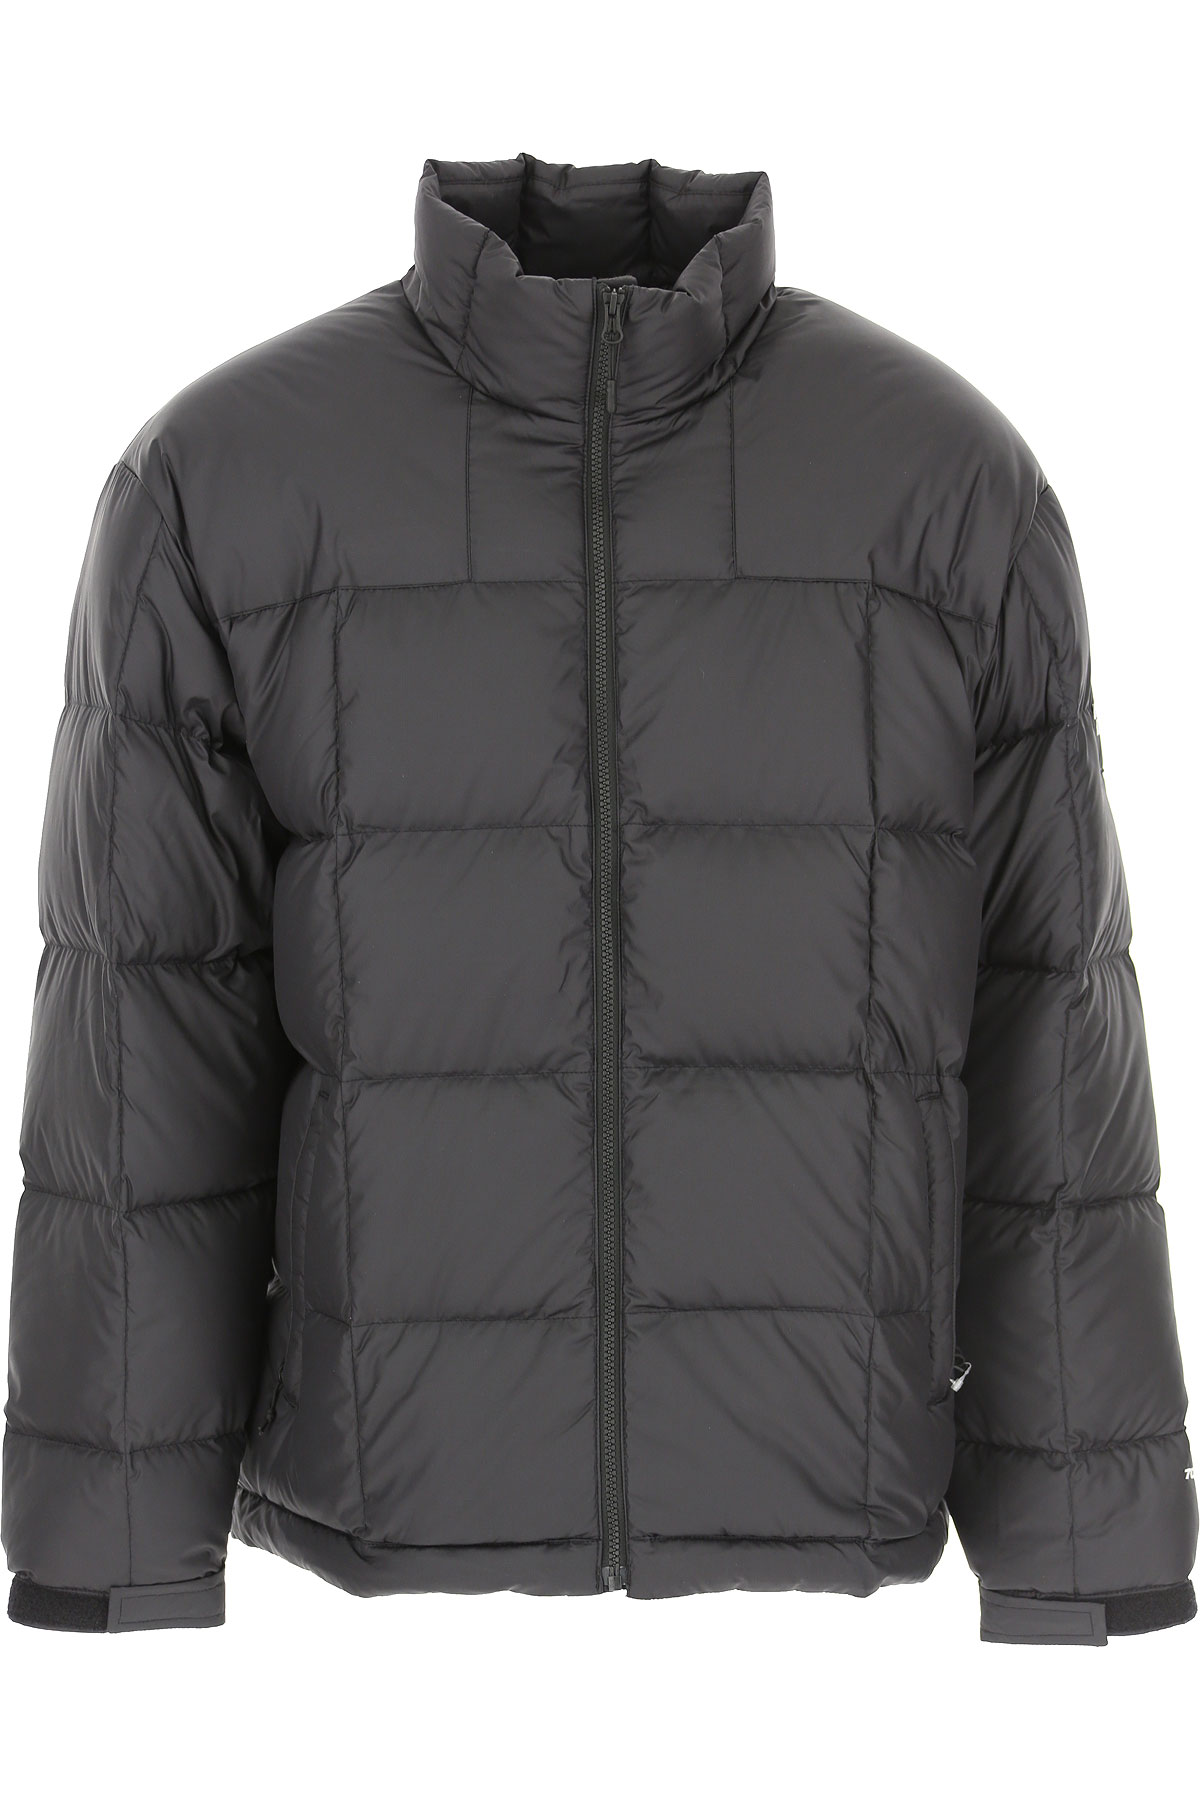 The North Face Down Jacket for Men, Puffer Ski Jacket On Sale, Black, polyestere, 2019, L M S XL XS